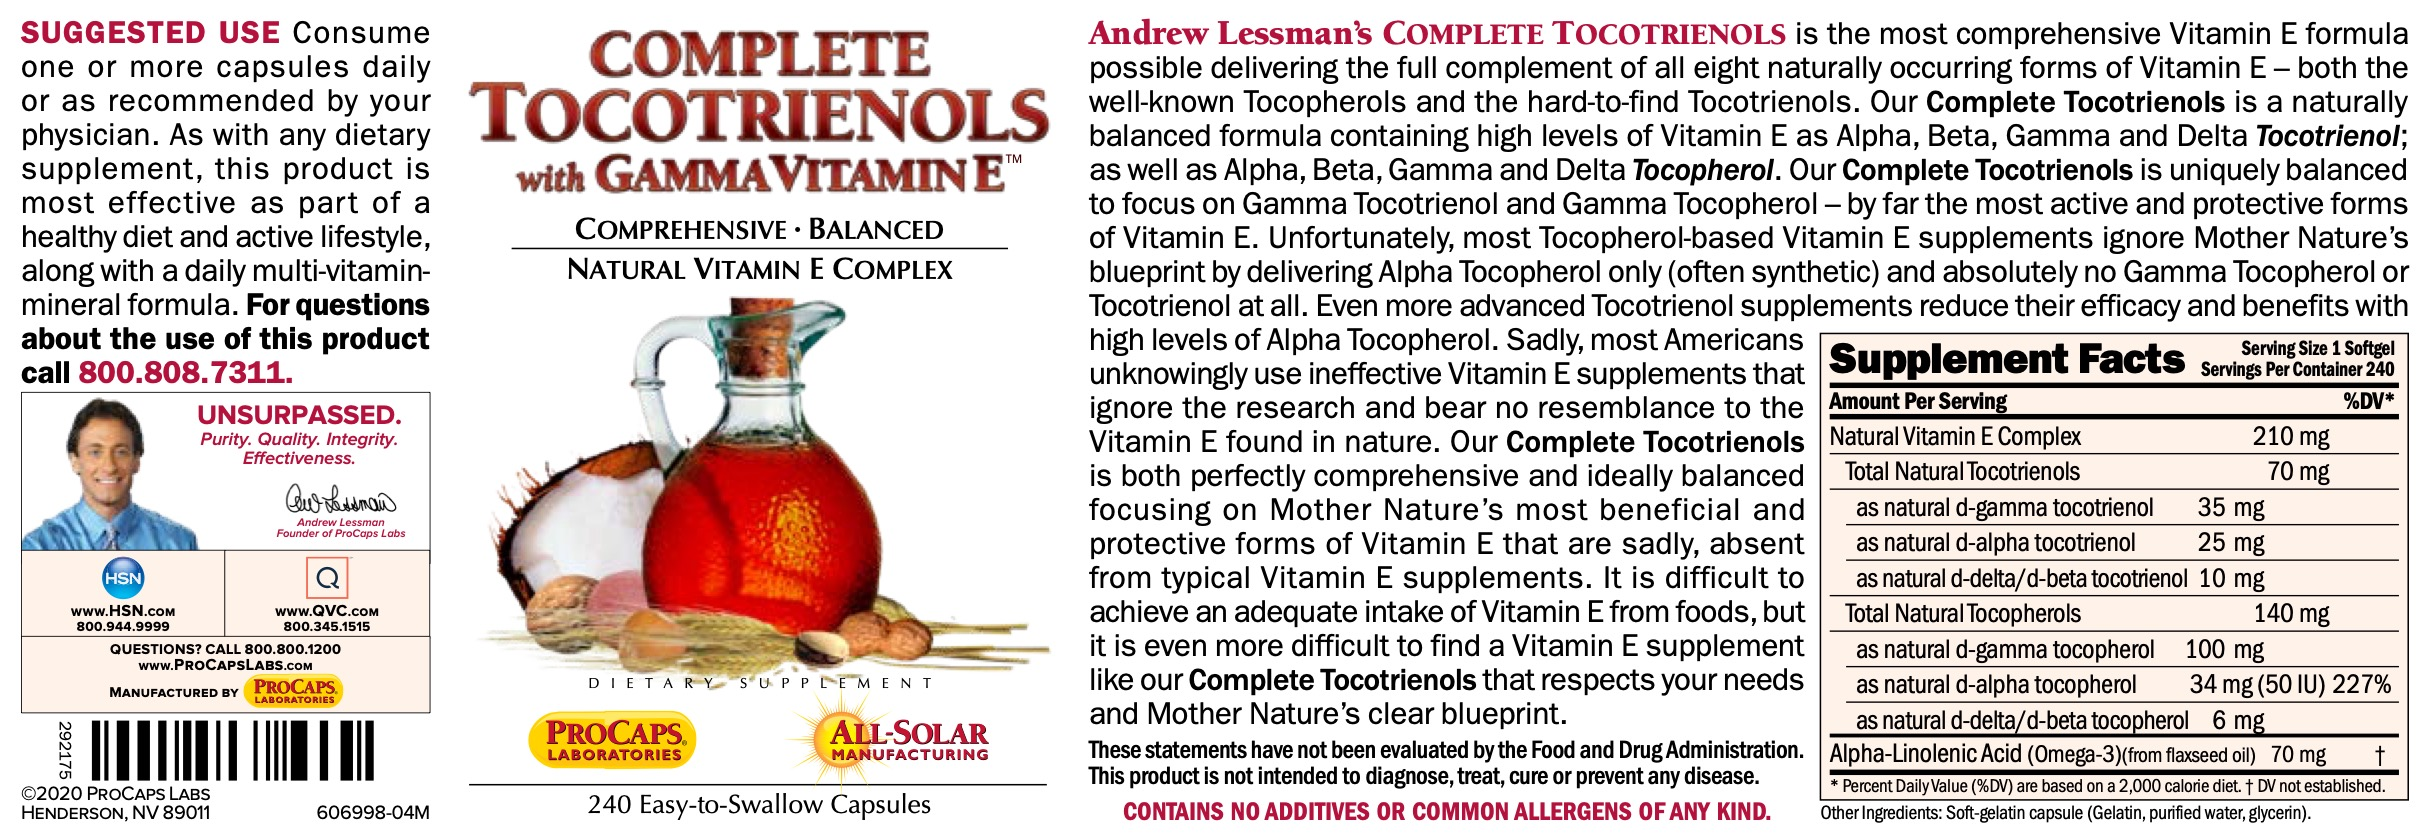 Complete-Tocotrienols-with-Gamma-Vitamin-E-Softgels-Vitamin-Separates